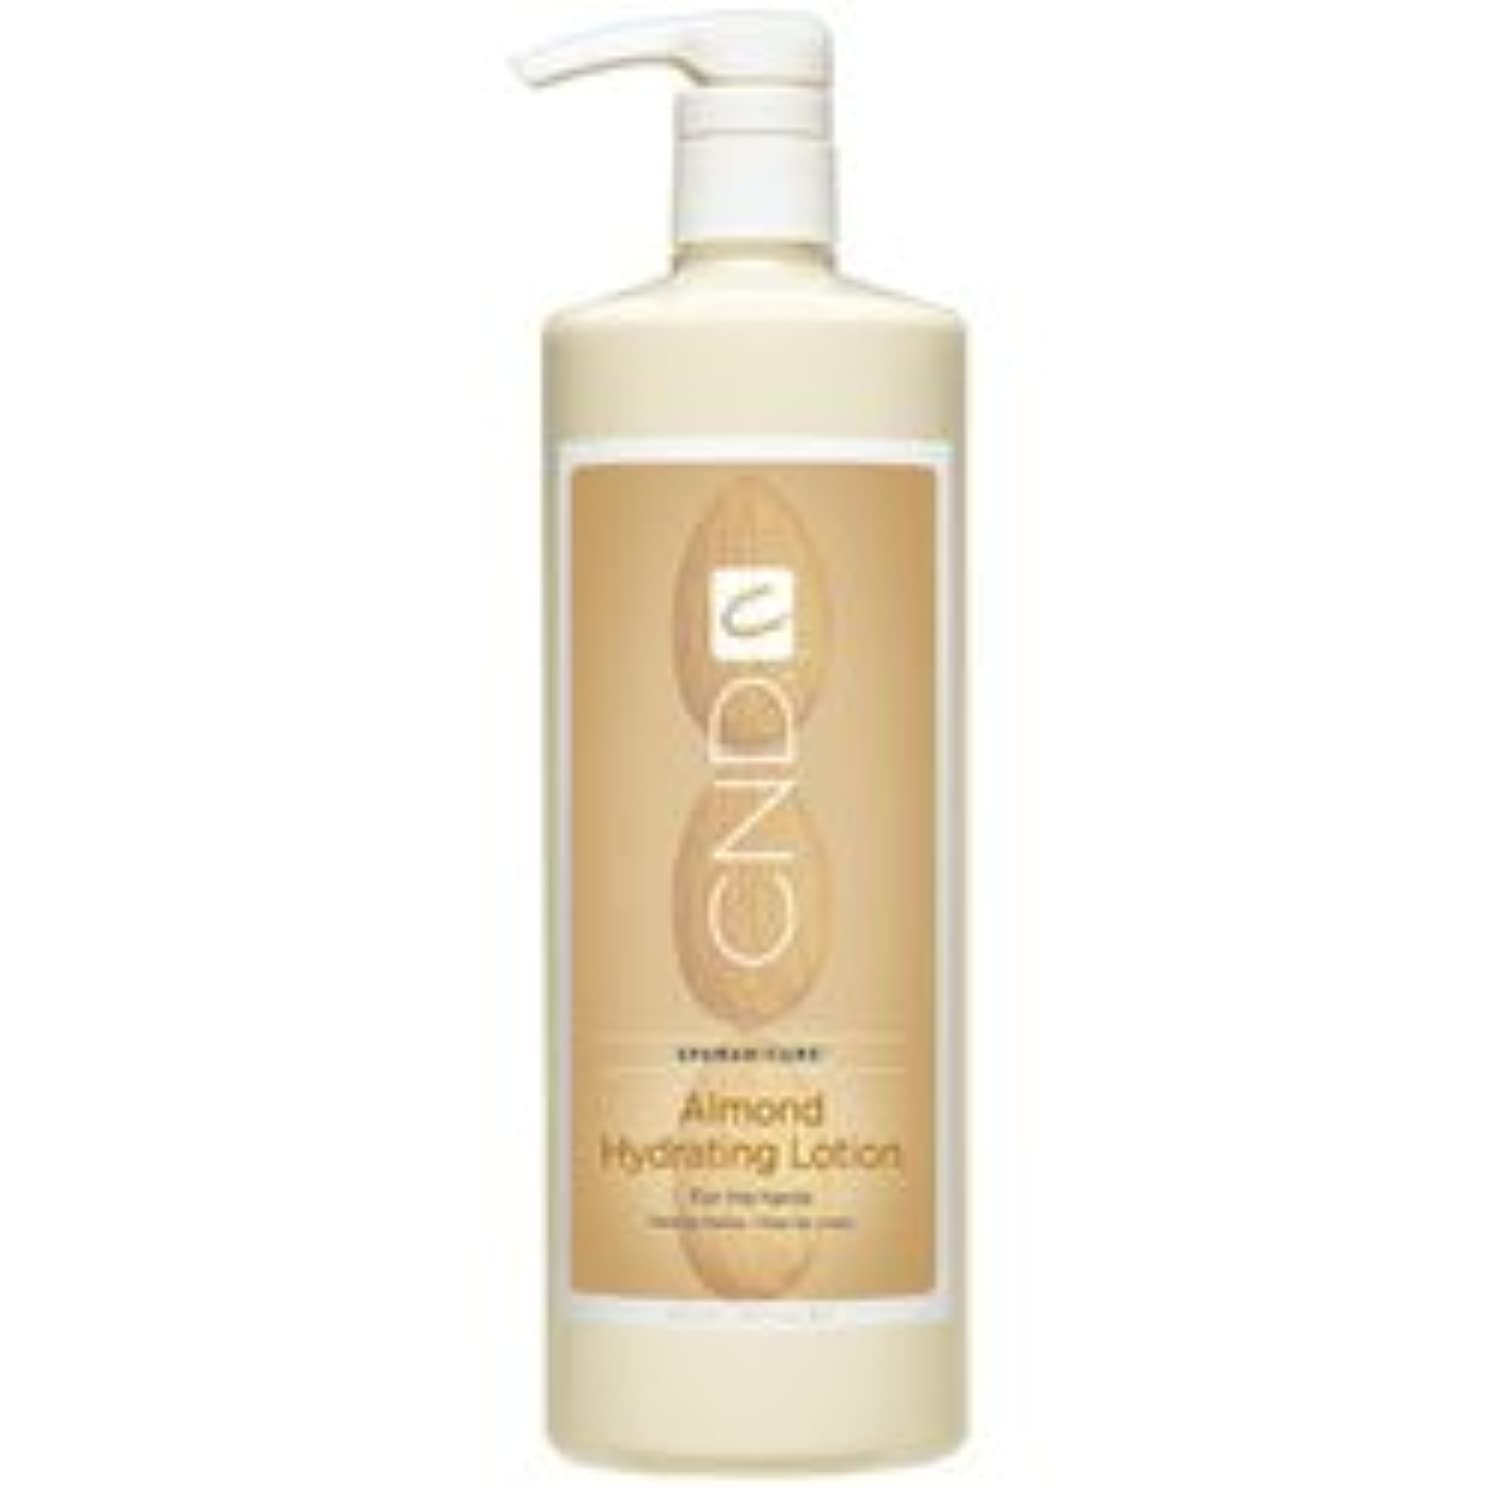 内向きさようならお肉CND SpaManicure - Almond Hydrating Lotion - 33oz